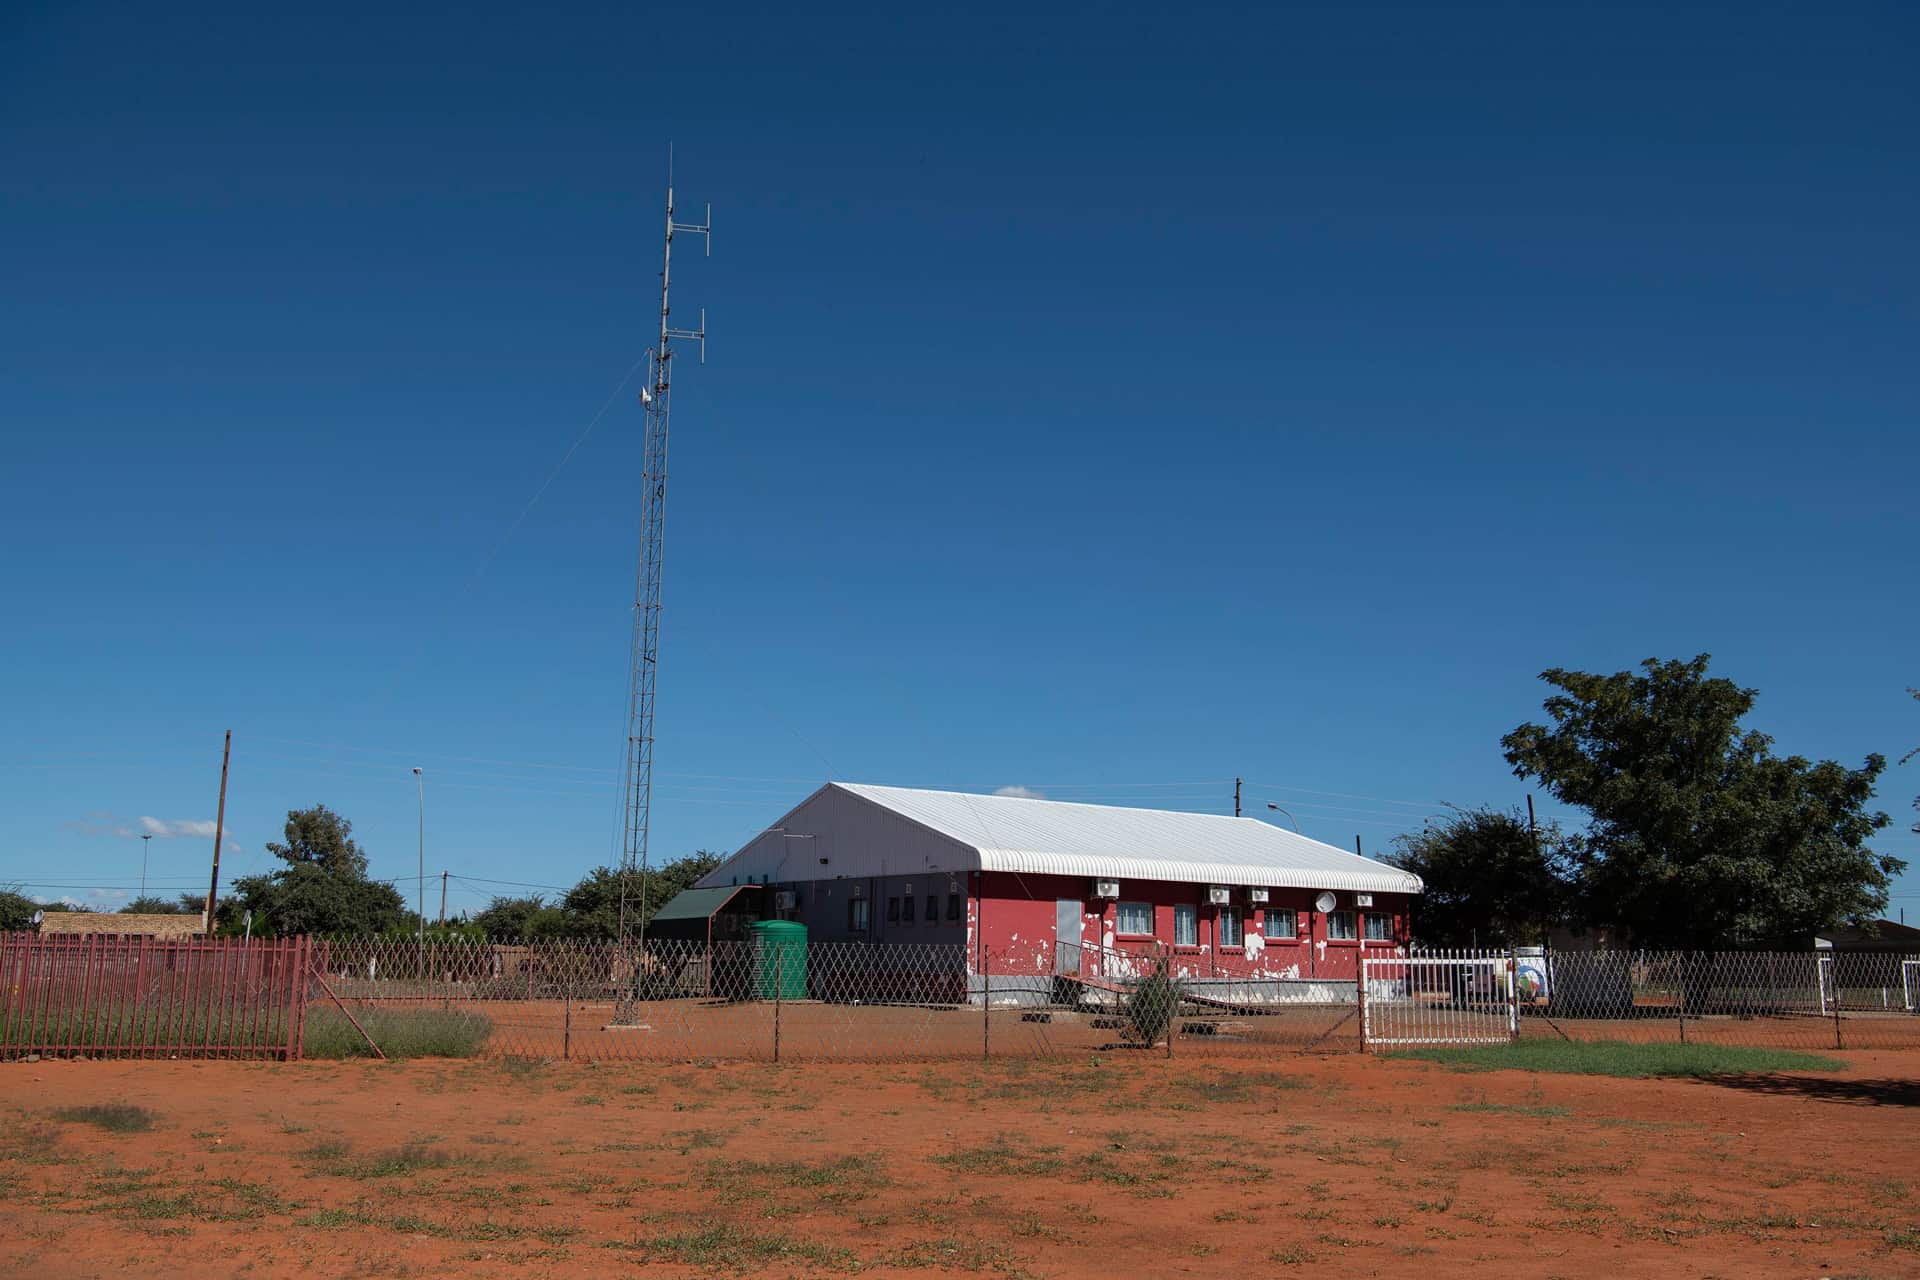 25 April 2019: The X-K Fm radio station building in Platfontein in the Northern Cape.